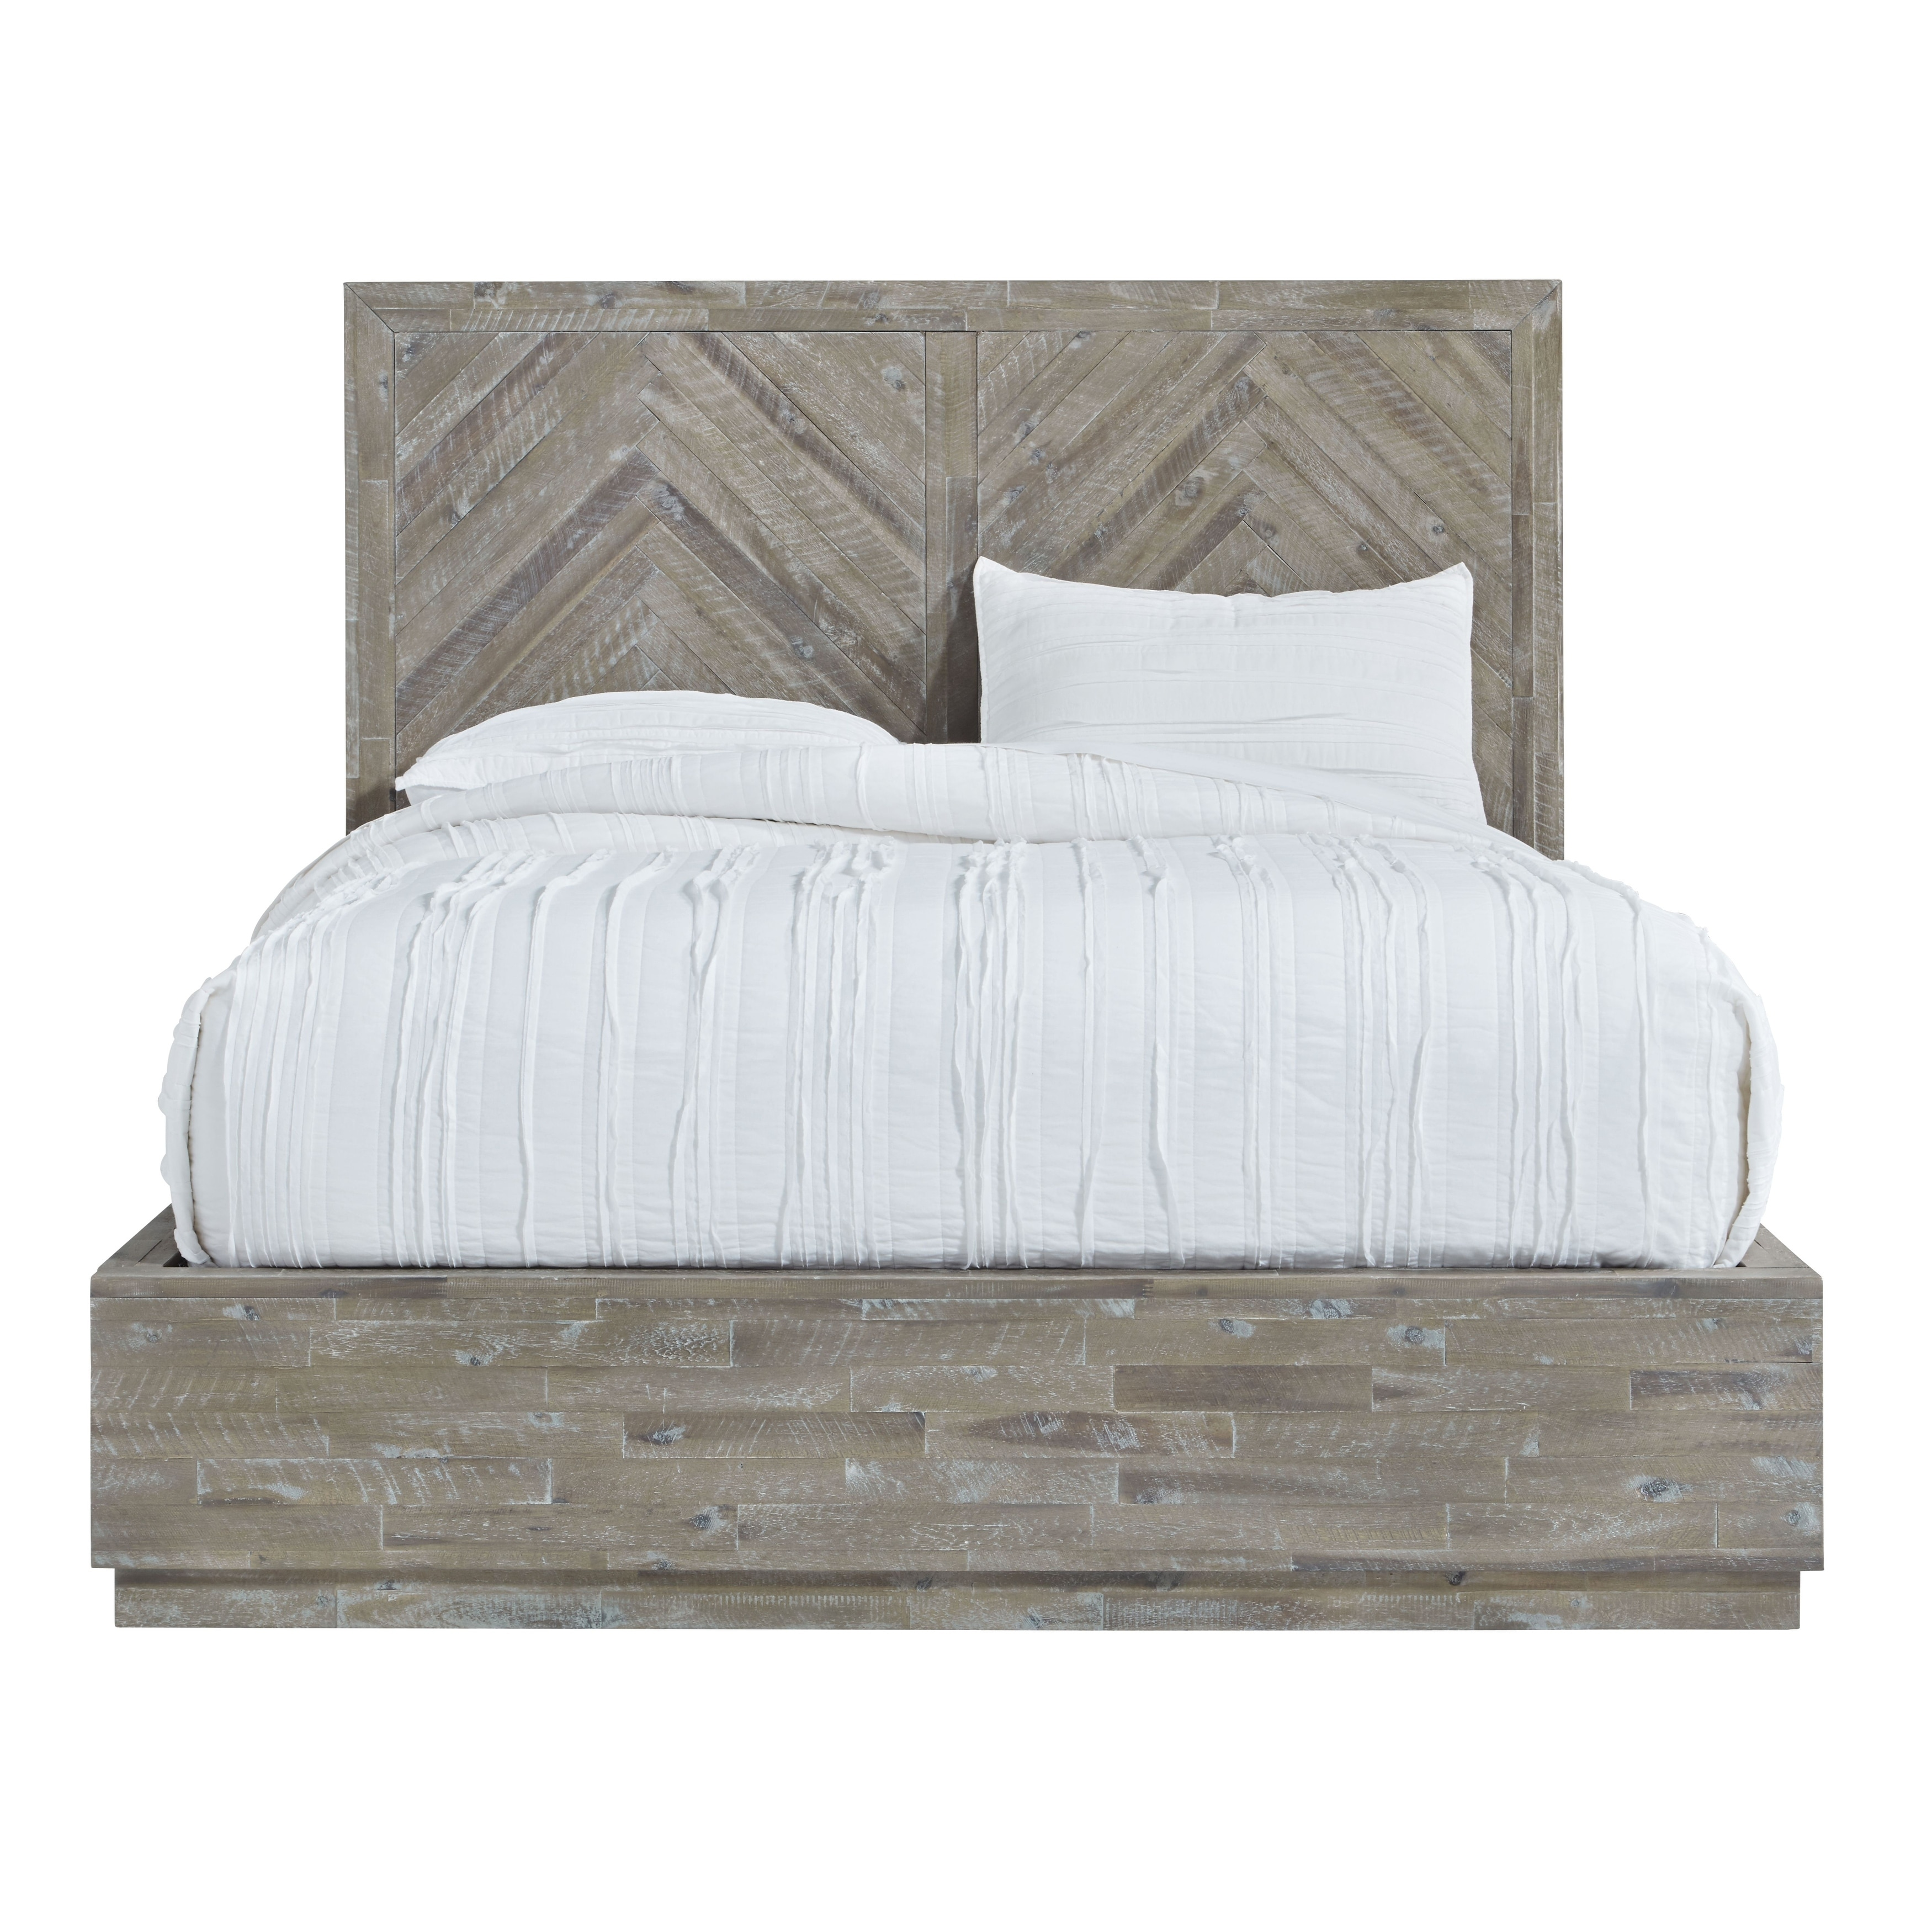 The Gray Barn Morning Star California King Size Solid Wood Platform Bed In Rustic Latte Overstock 29345075